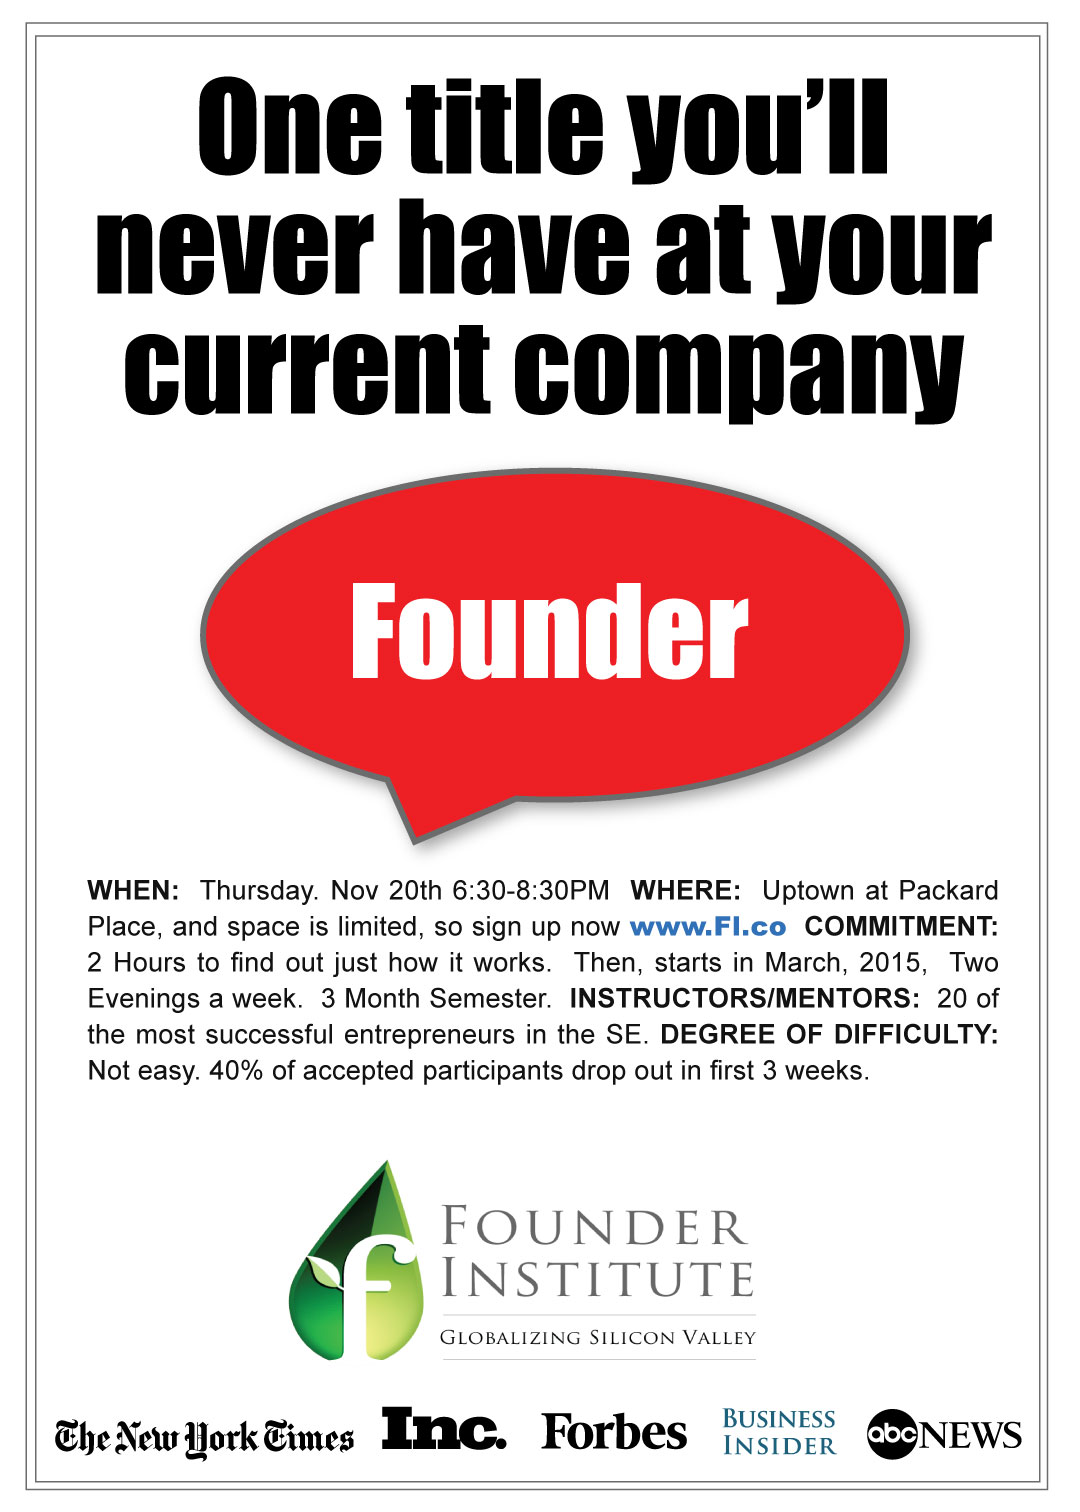 Founders_Flyers_5x7_2